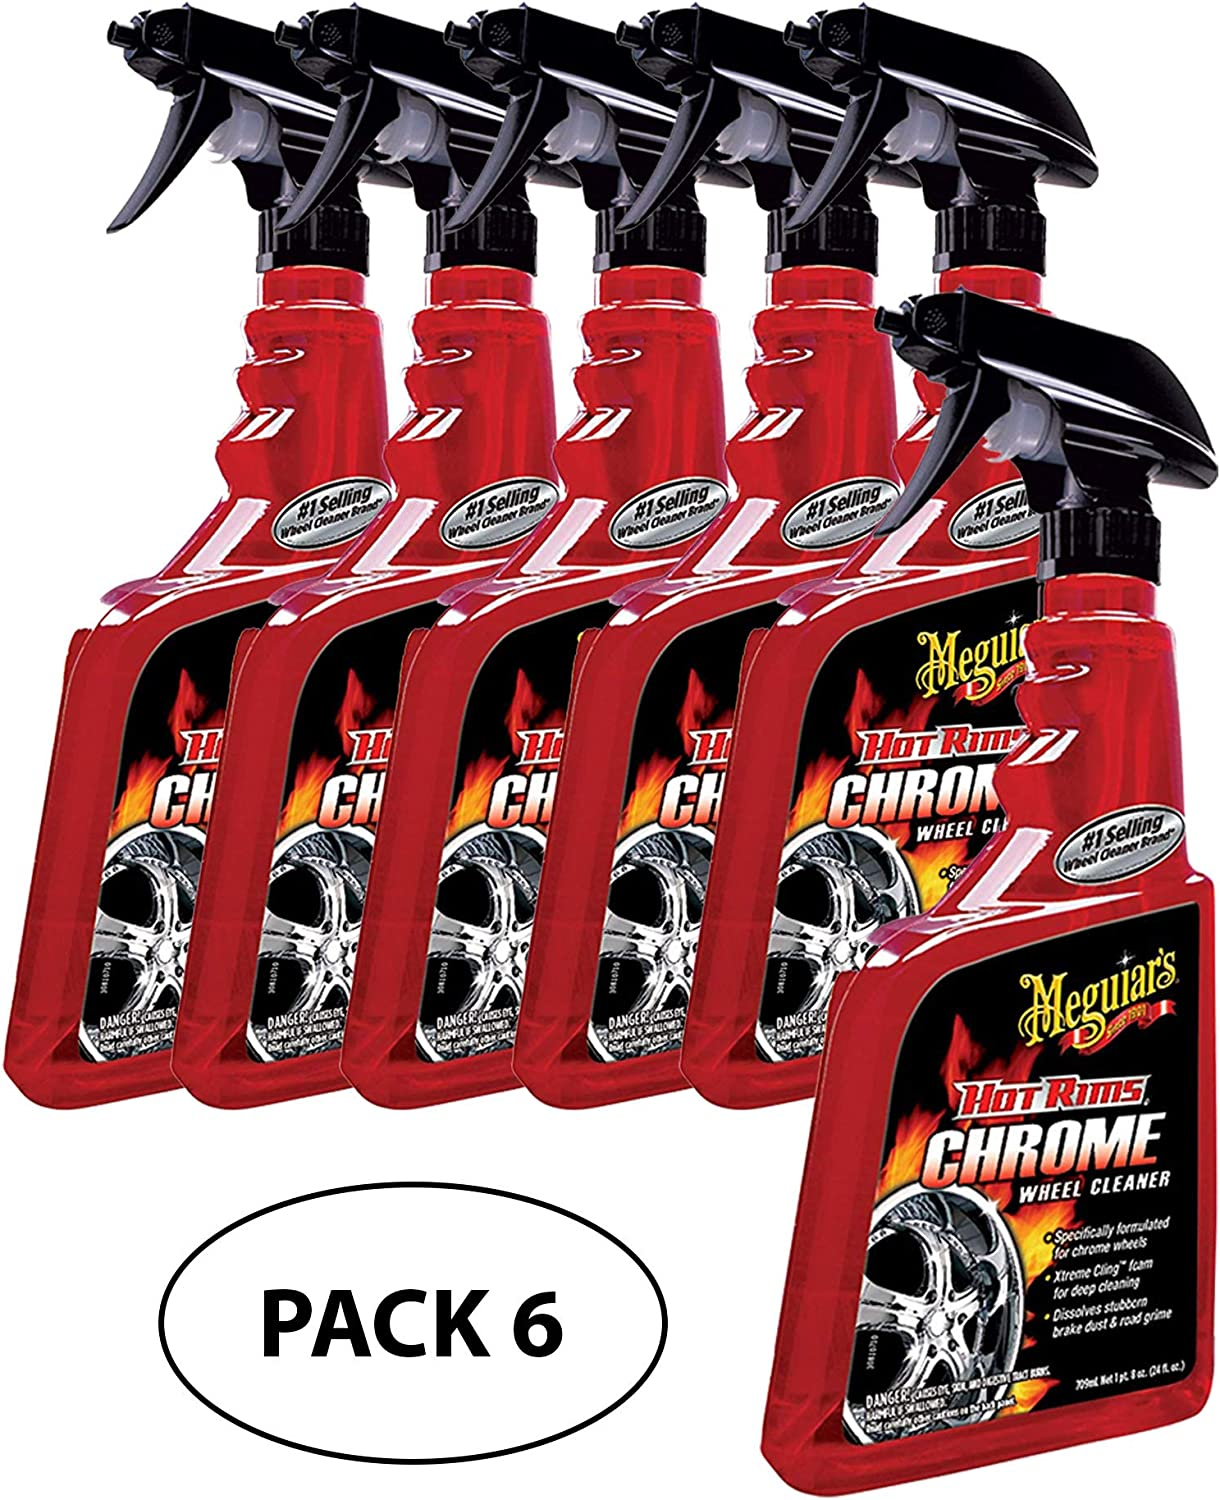 Meguiar's G19124 Hot Rims Chrome Wheel Cleaner